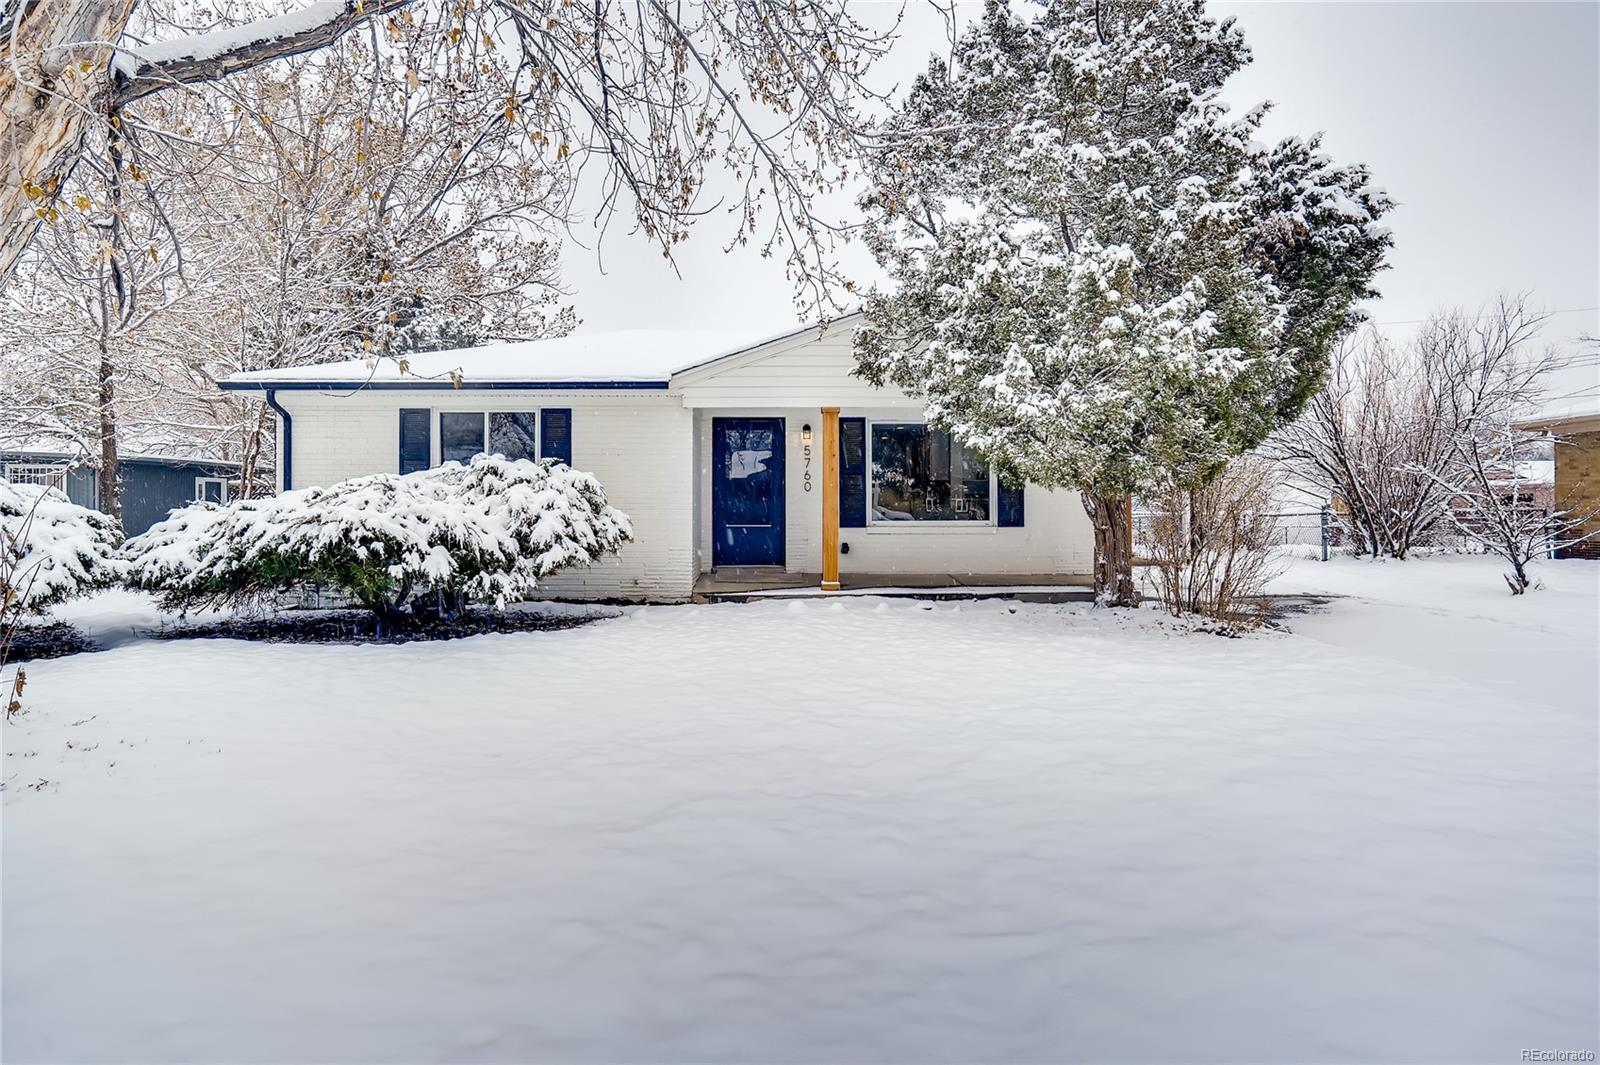 5760 Dudley Street, Arvada, CO 80002 - Arvada, CO real estate listing